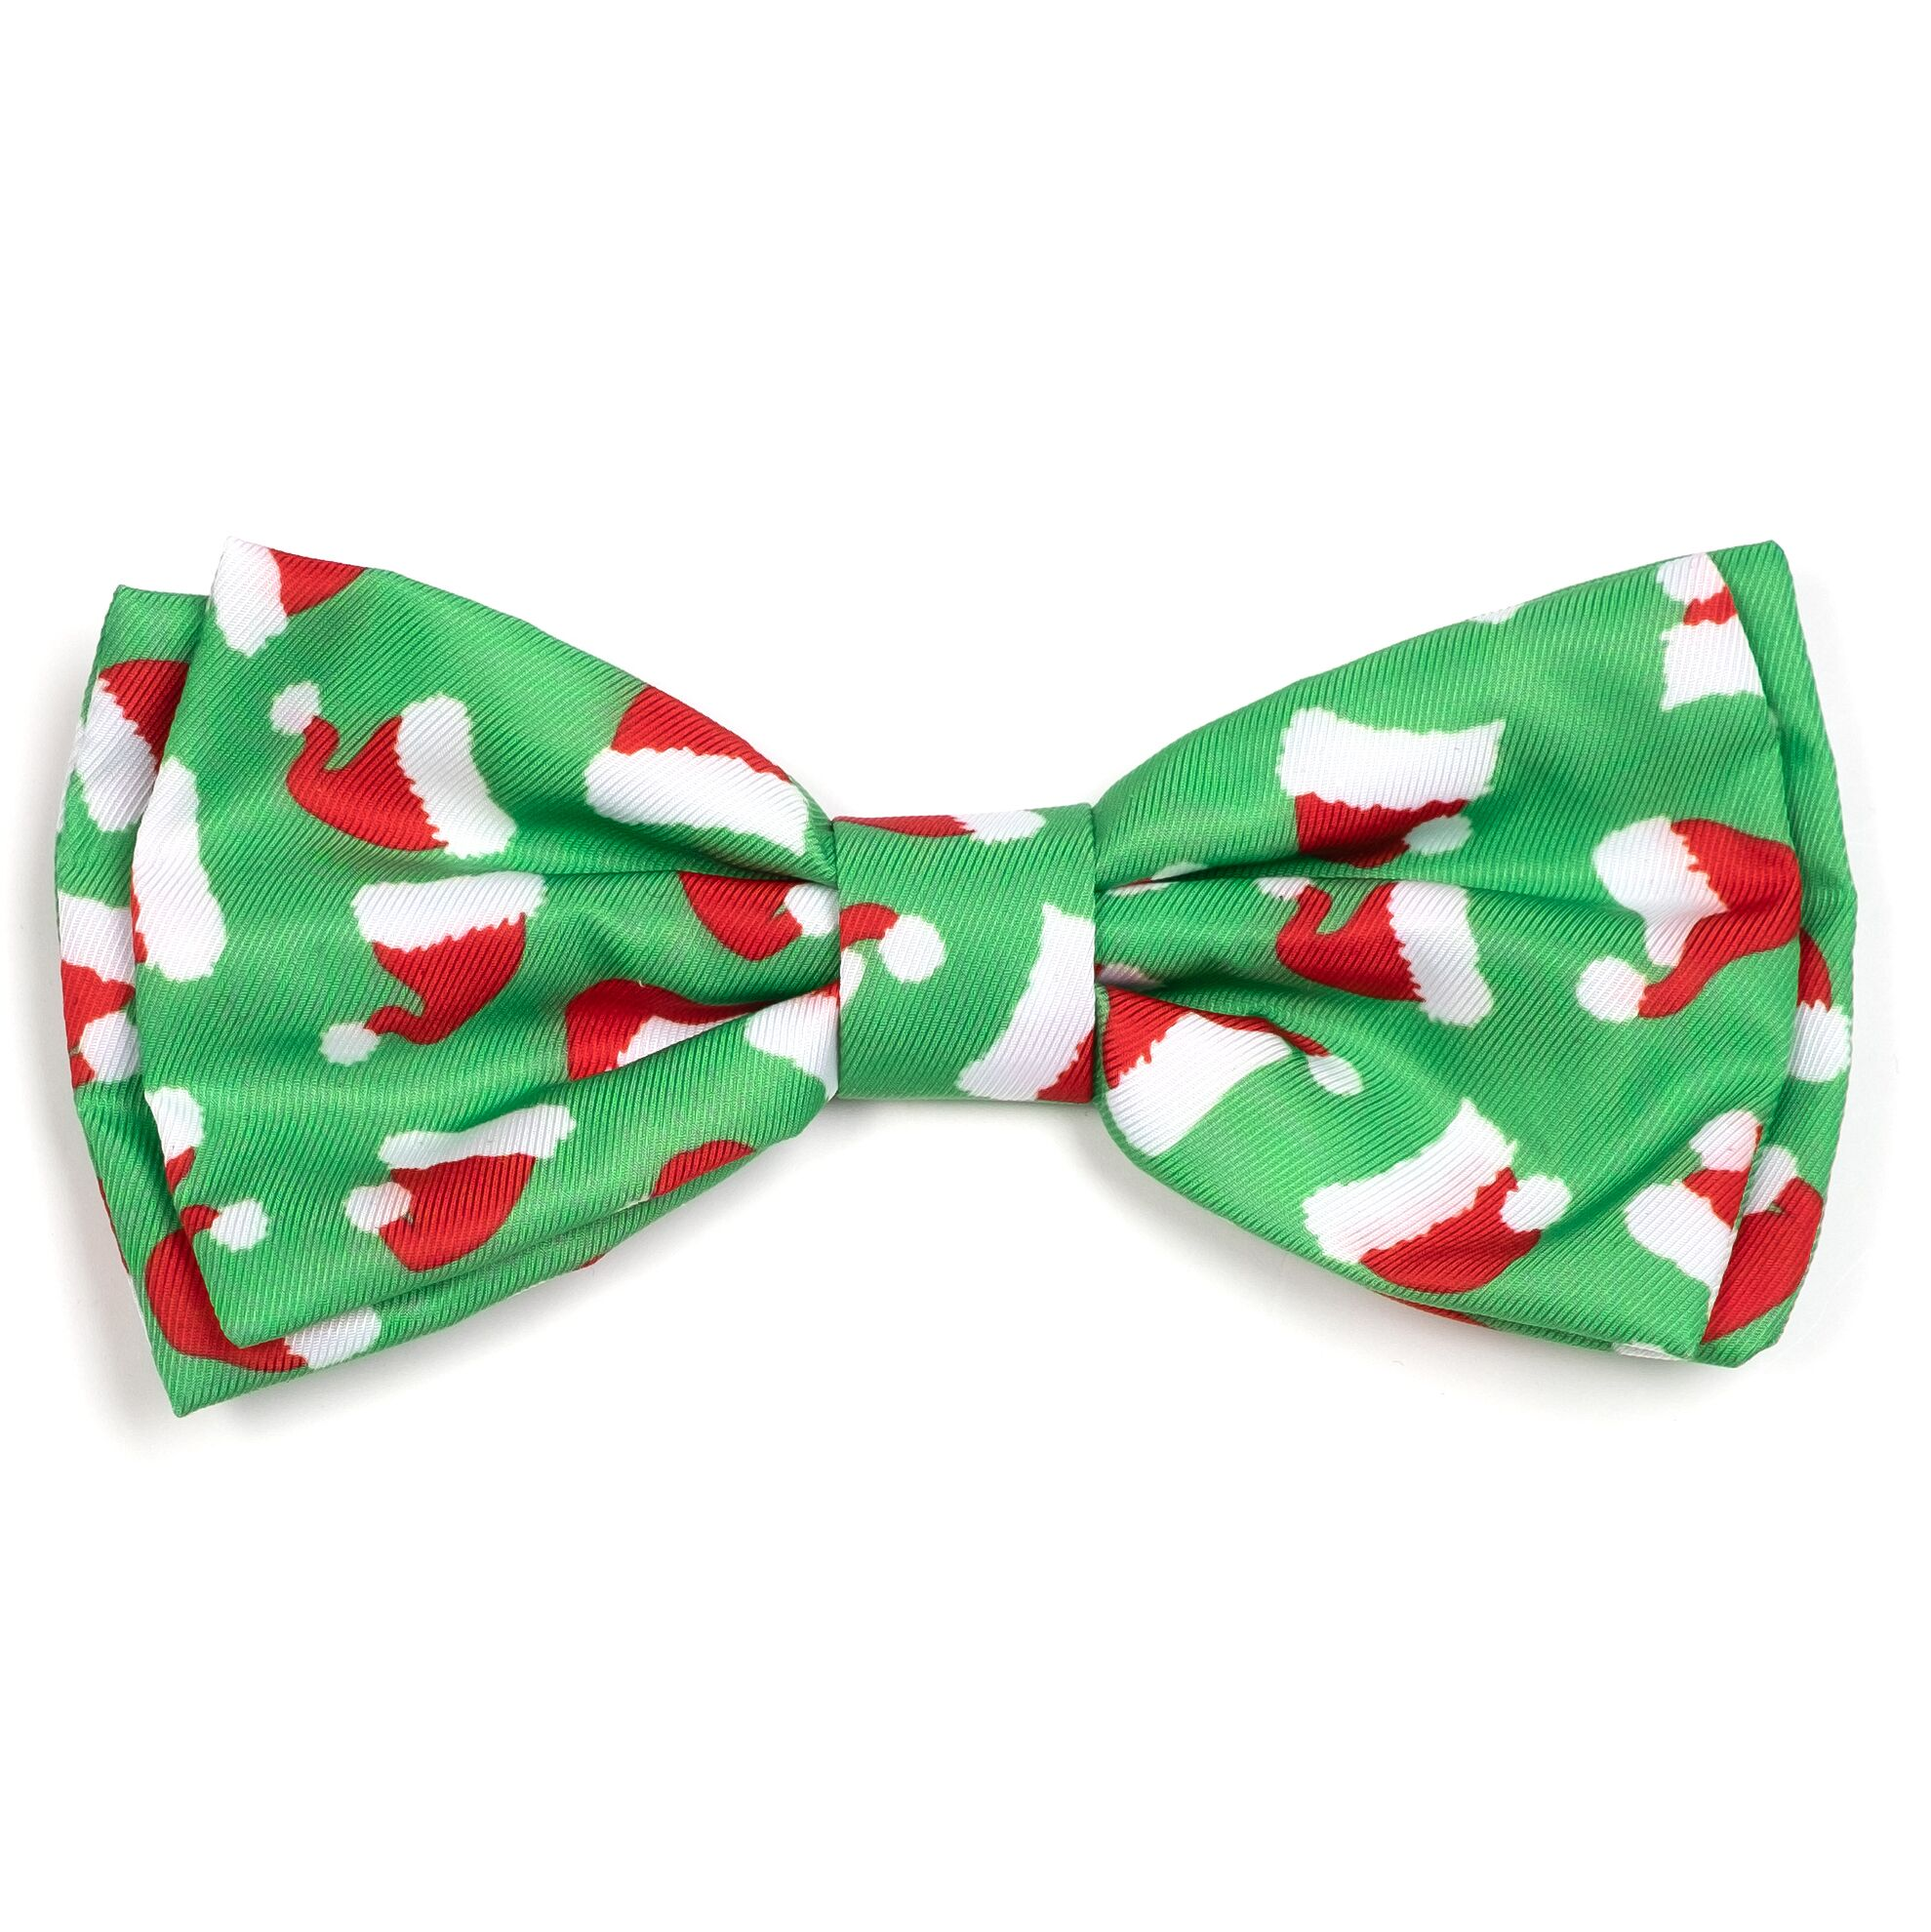 The Worthy Dog Bow Tie, Santa Hats, Large